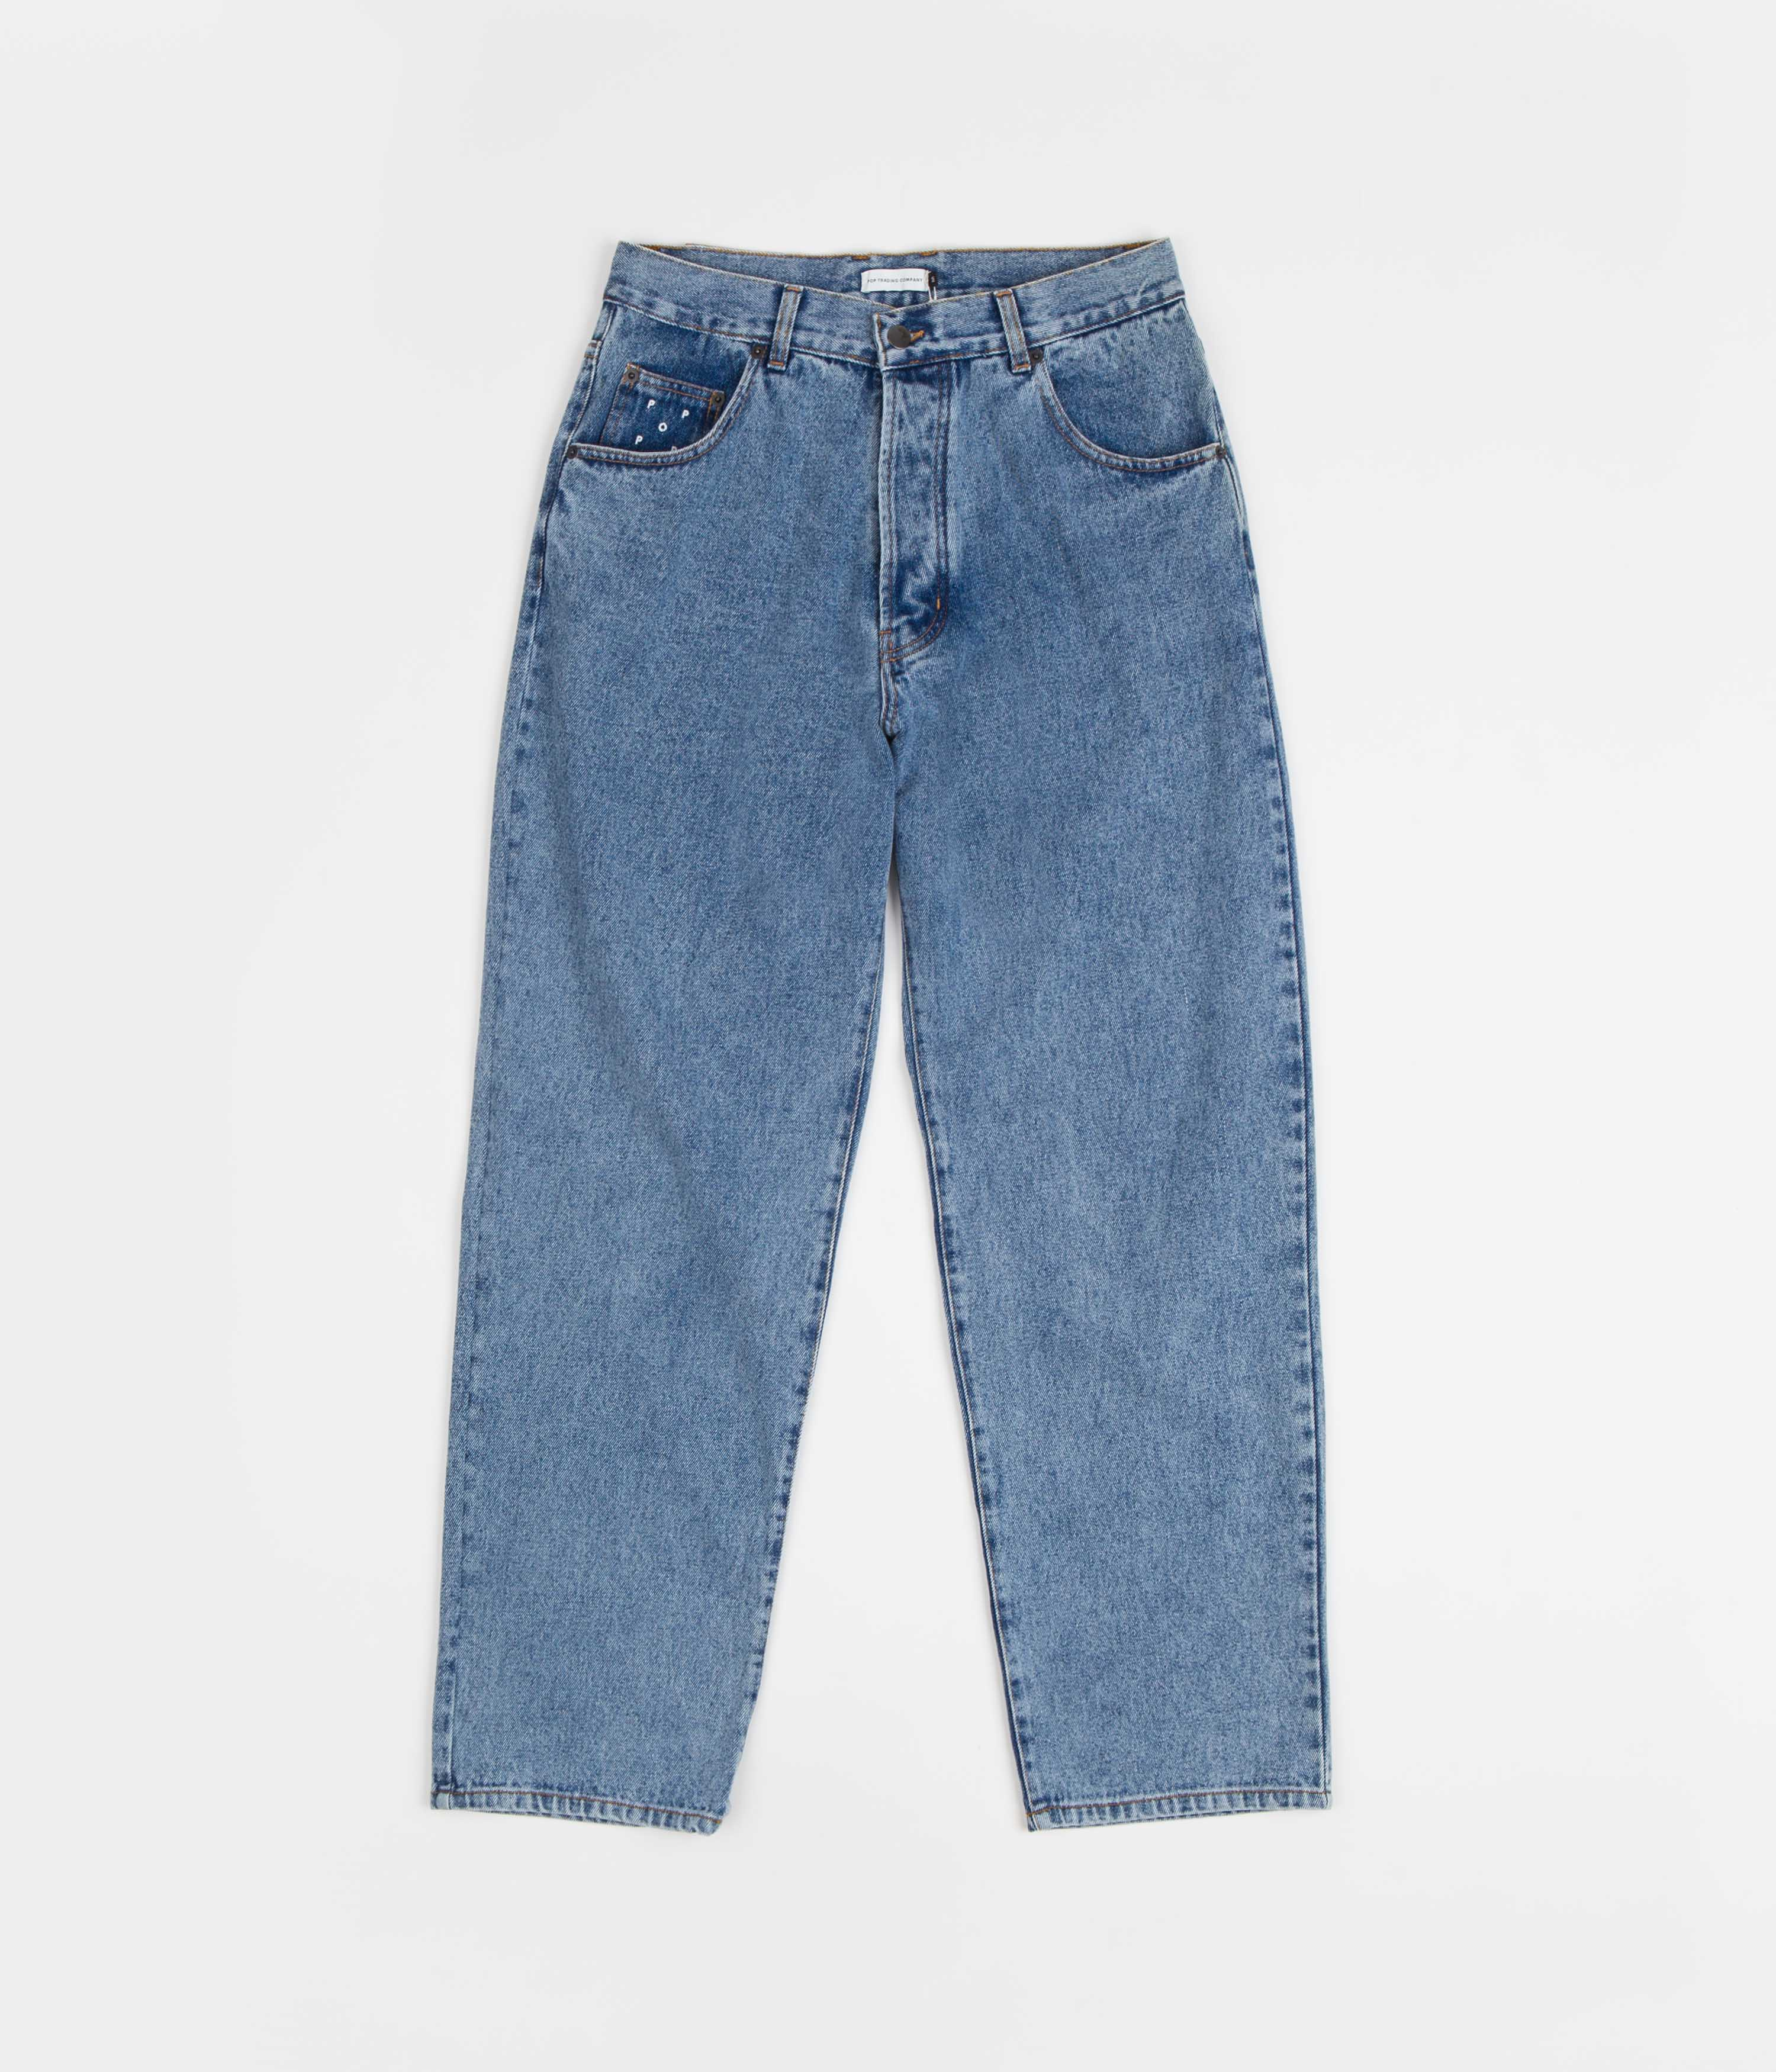 Pop Trading Company DRS Denim Pants - Stonewashed